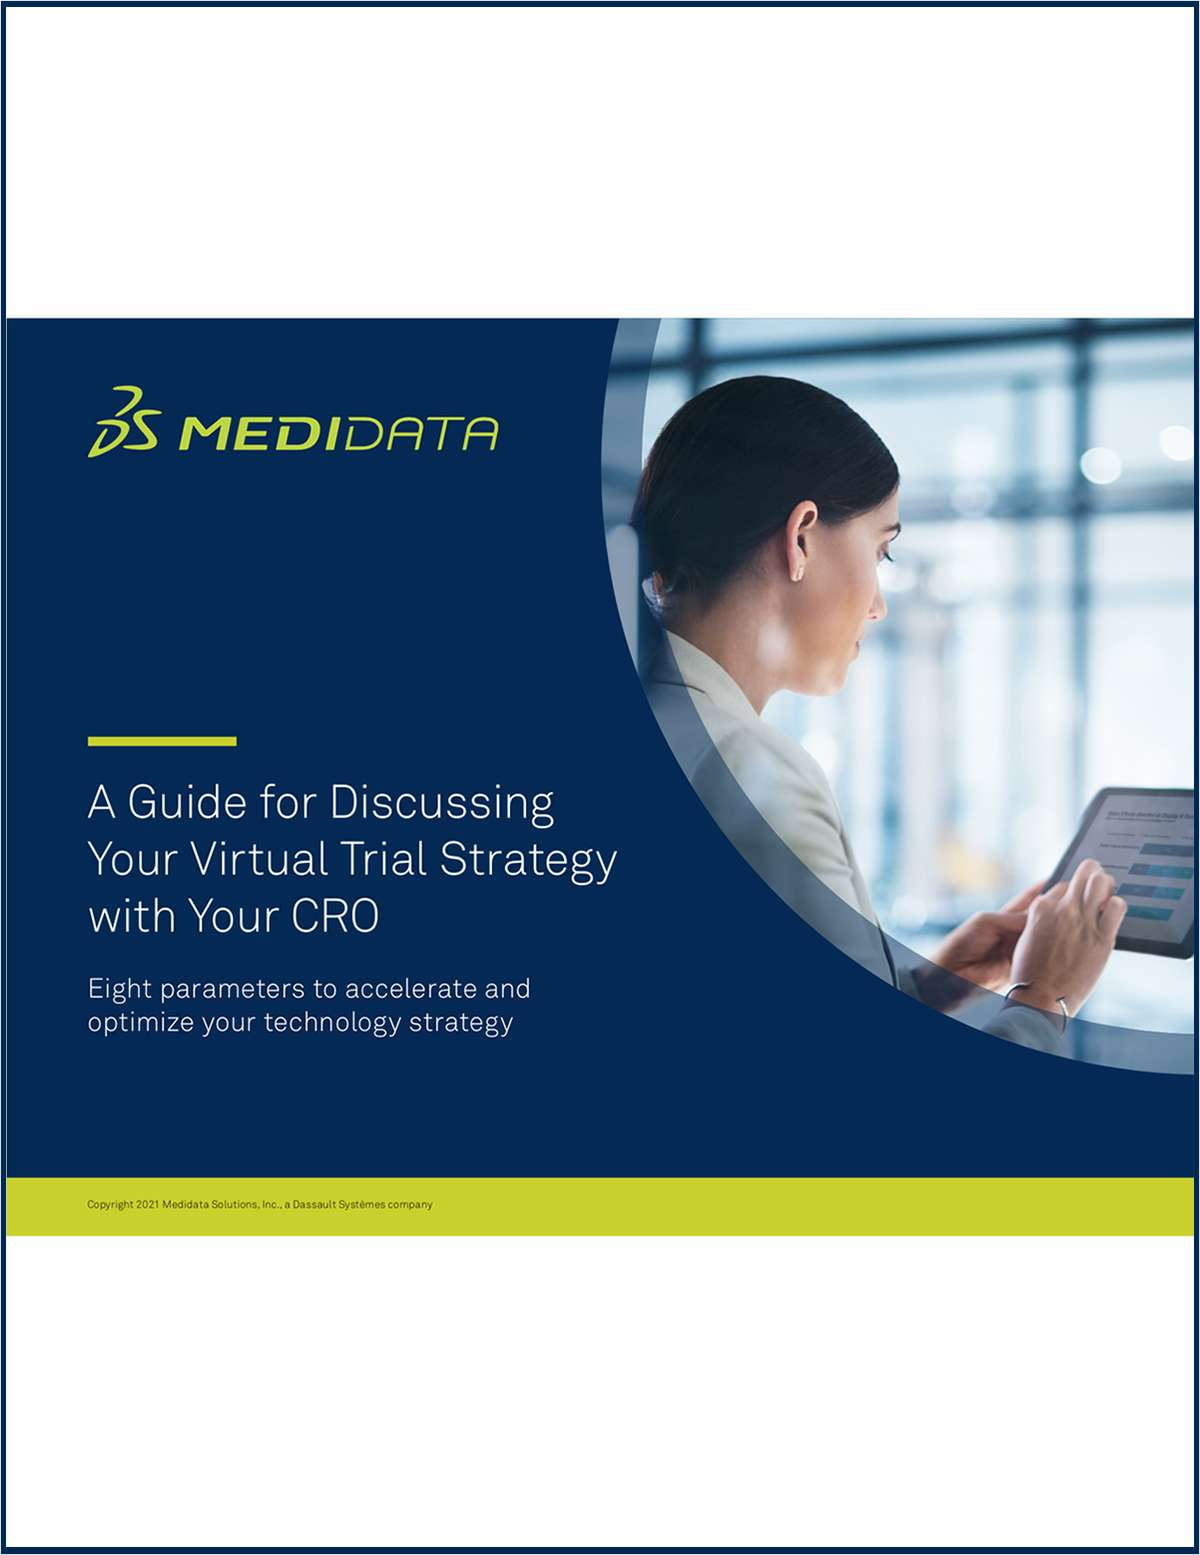 A Guide for Discussing Your Decentralized Trial Strategy with Your CRO